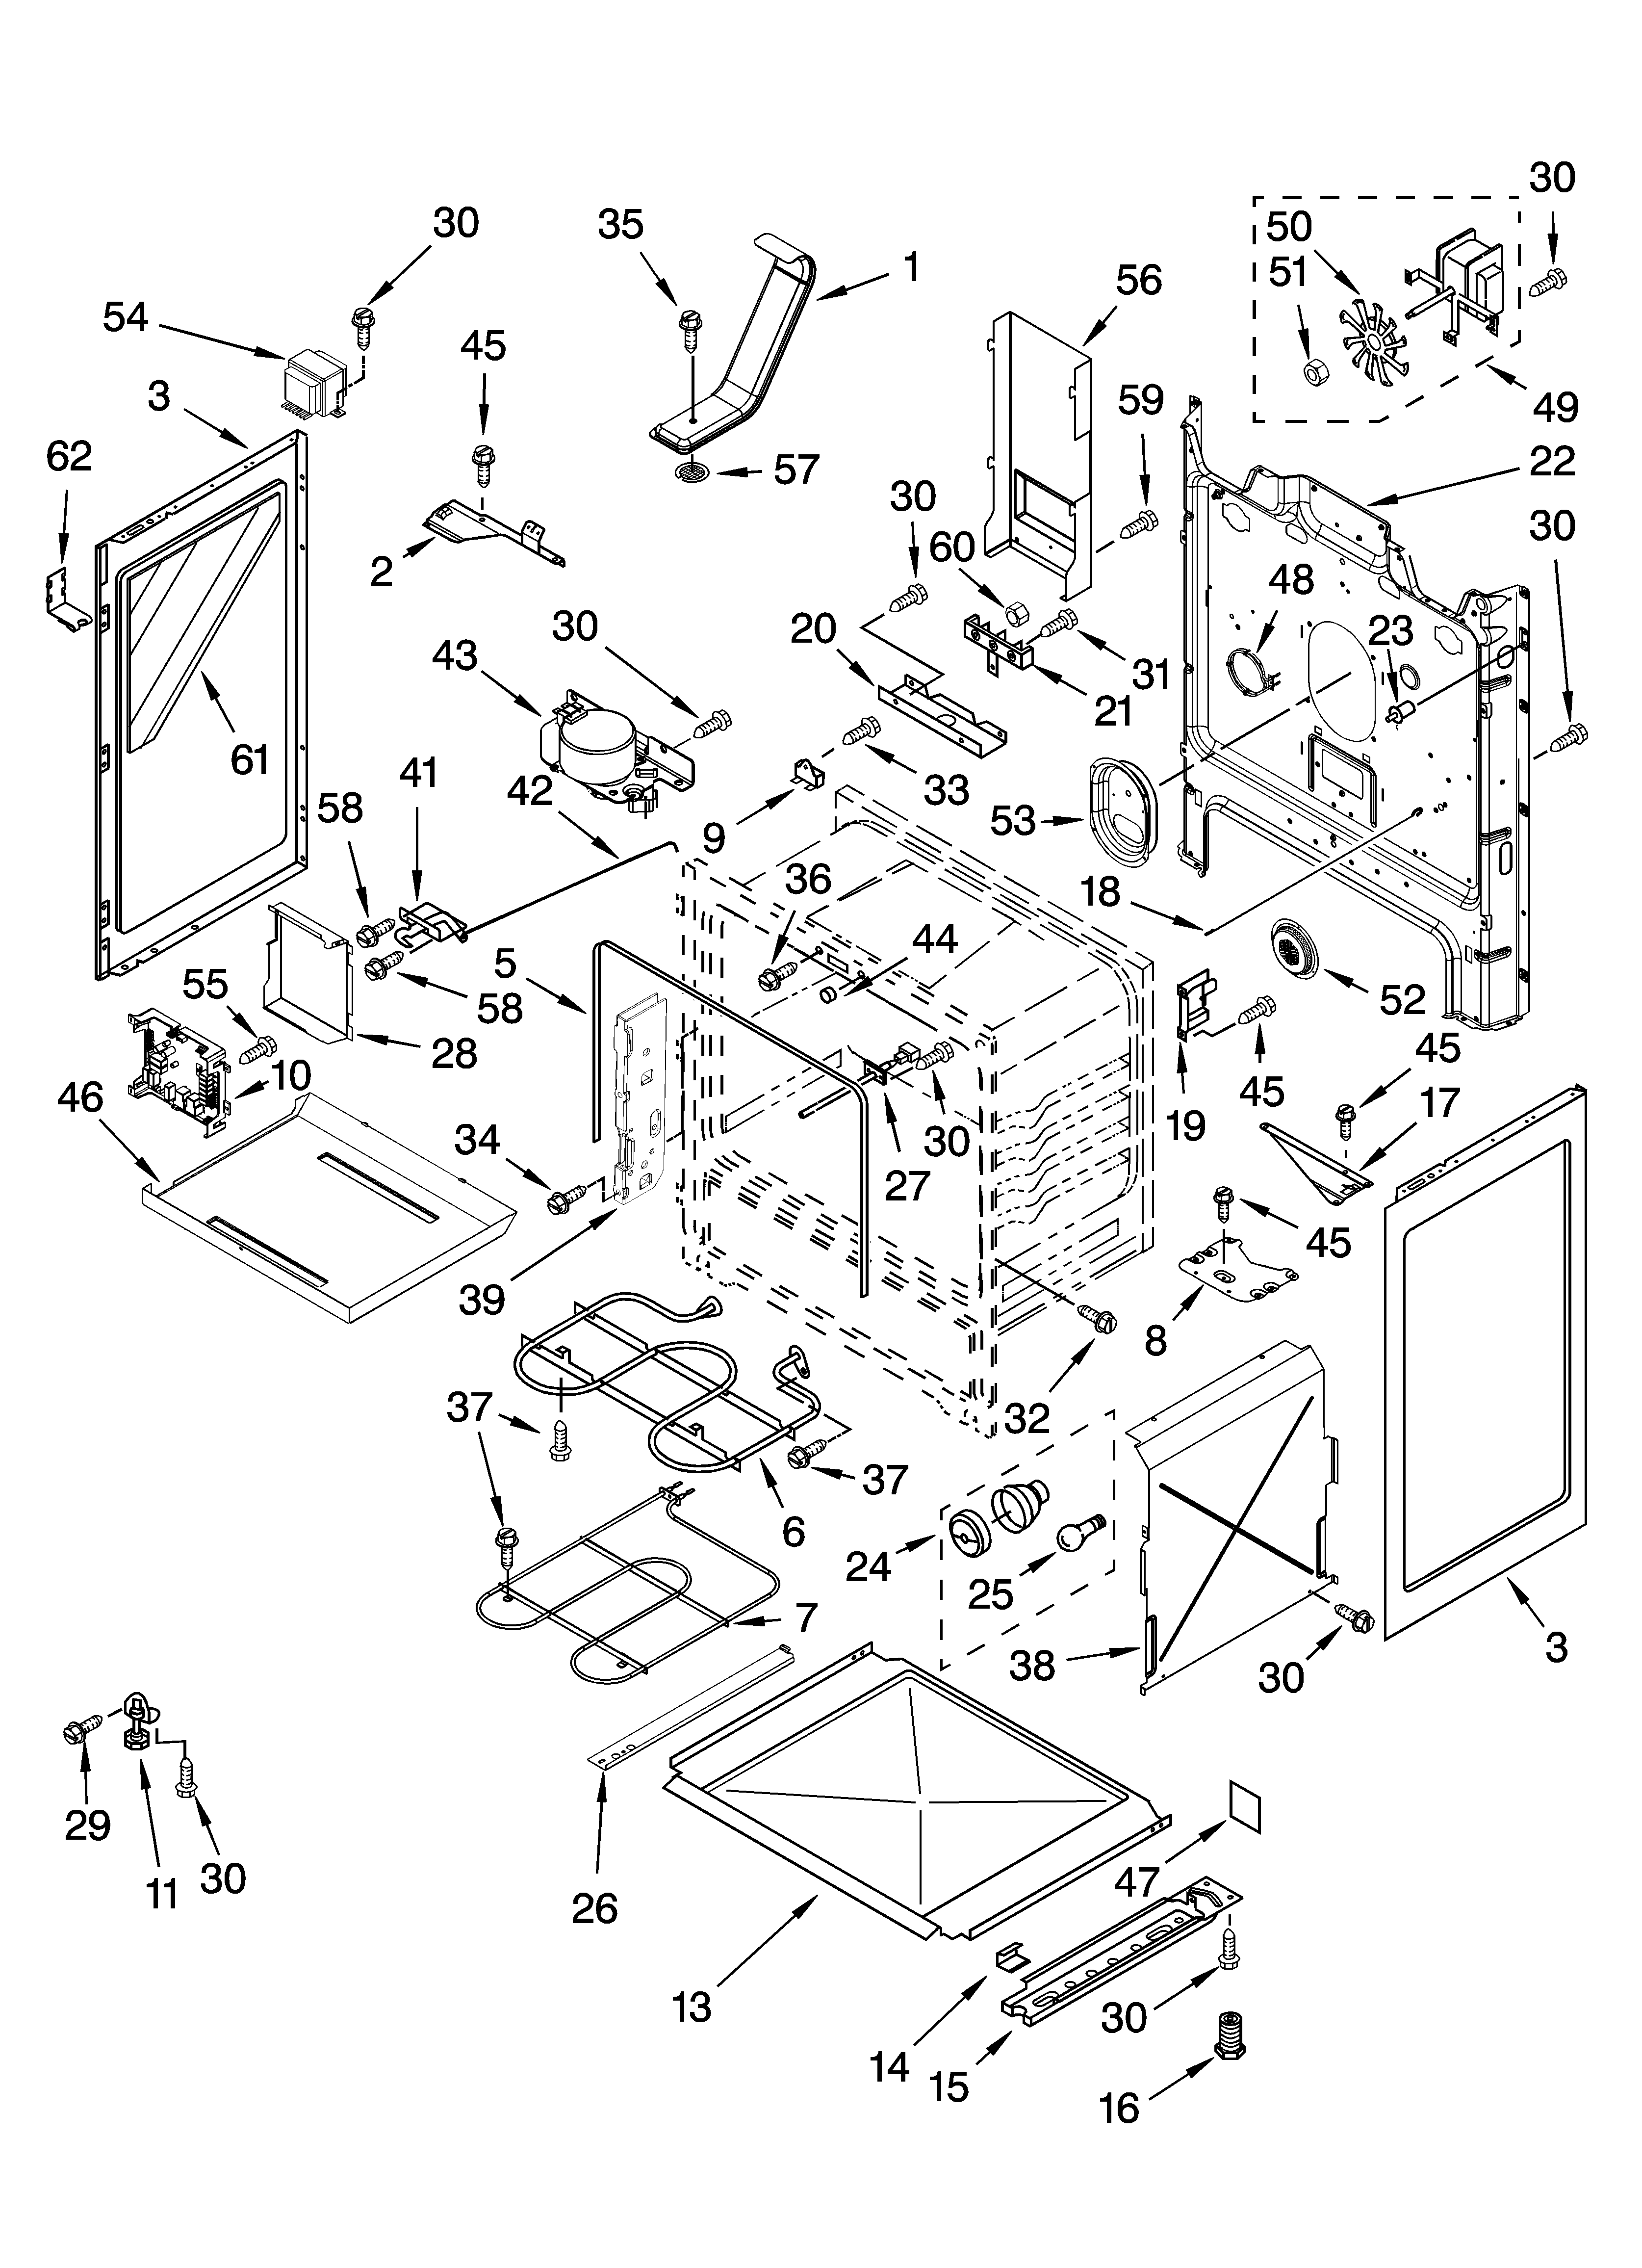 Whirlpool GR773LXSB2 chassis parts diagram